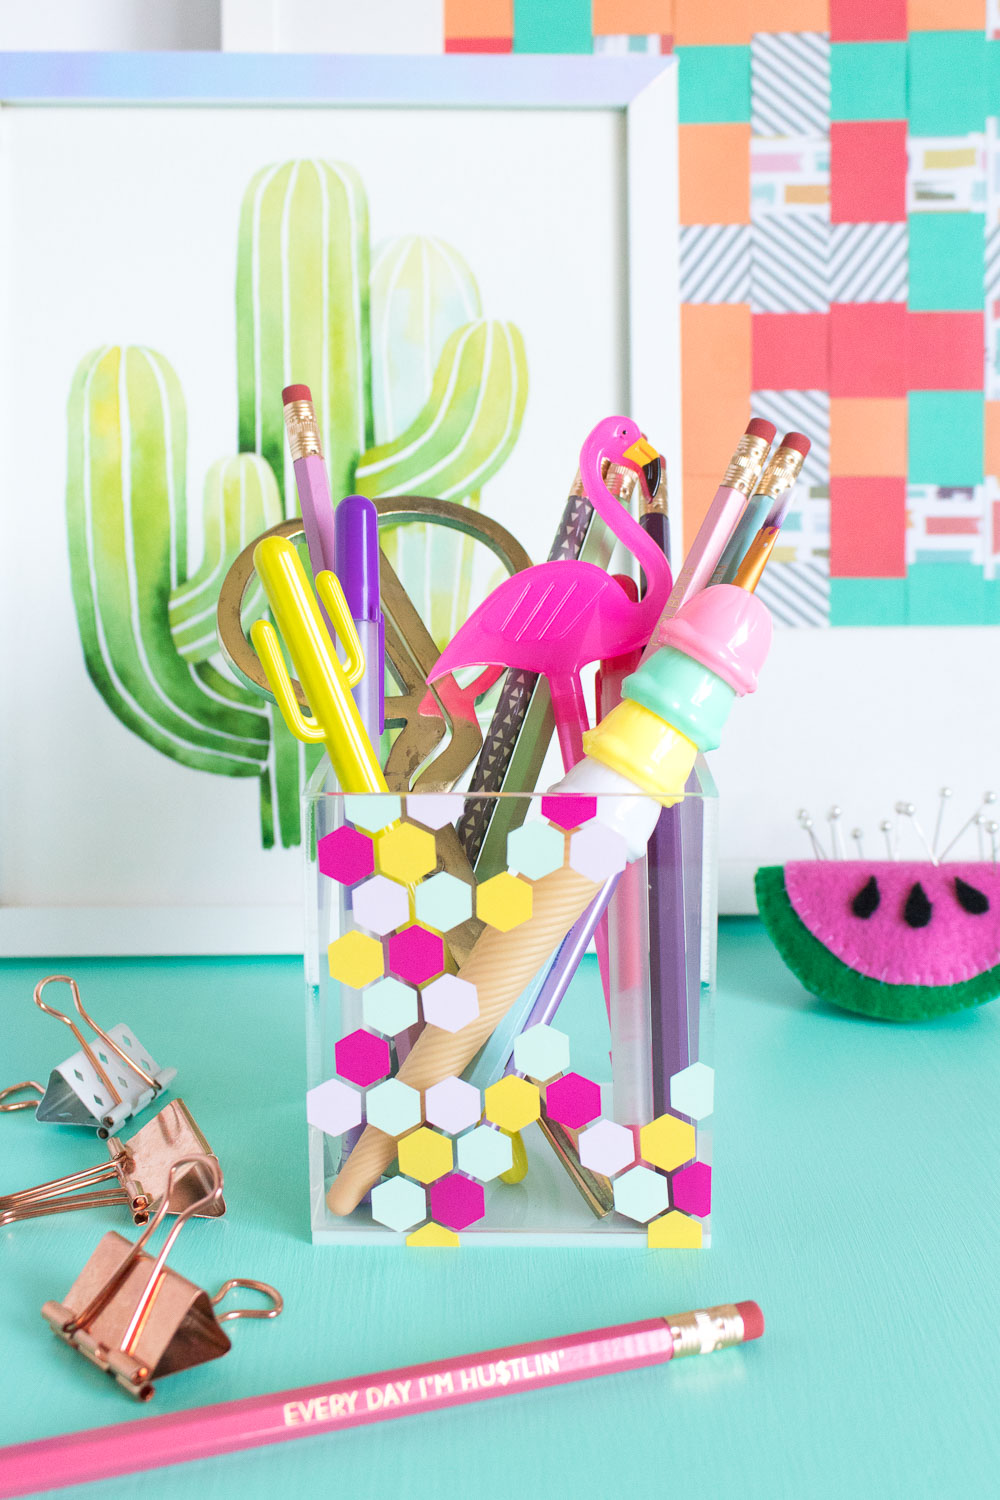 DIY clear acryl organizer with colorful hexagons